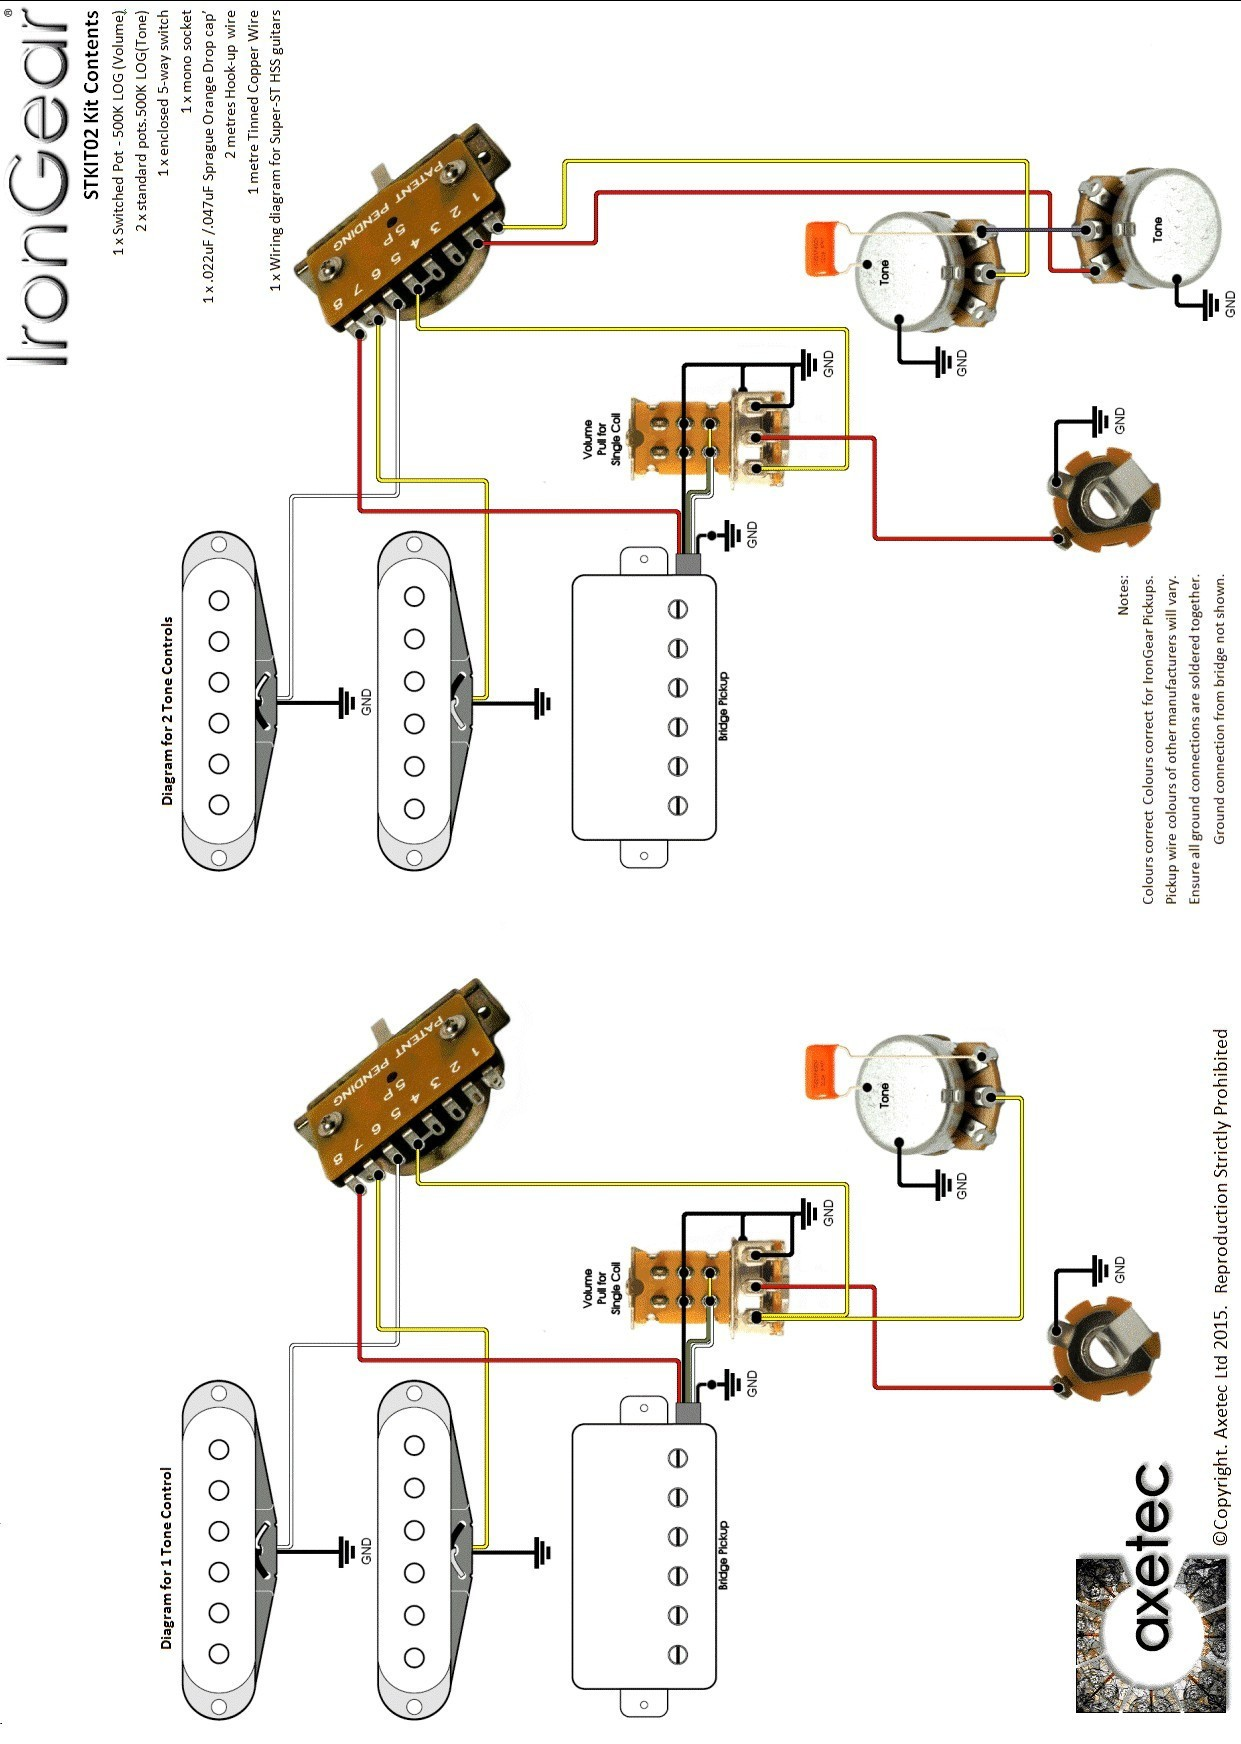 Electric Guitar Hsh Wiring Diagram Library Japan Strat Diagrams Jackson Image